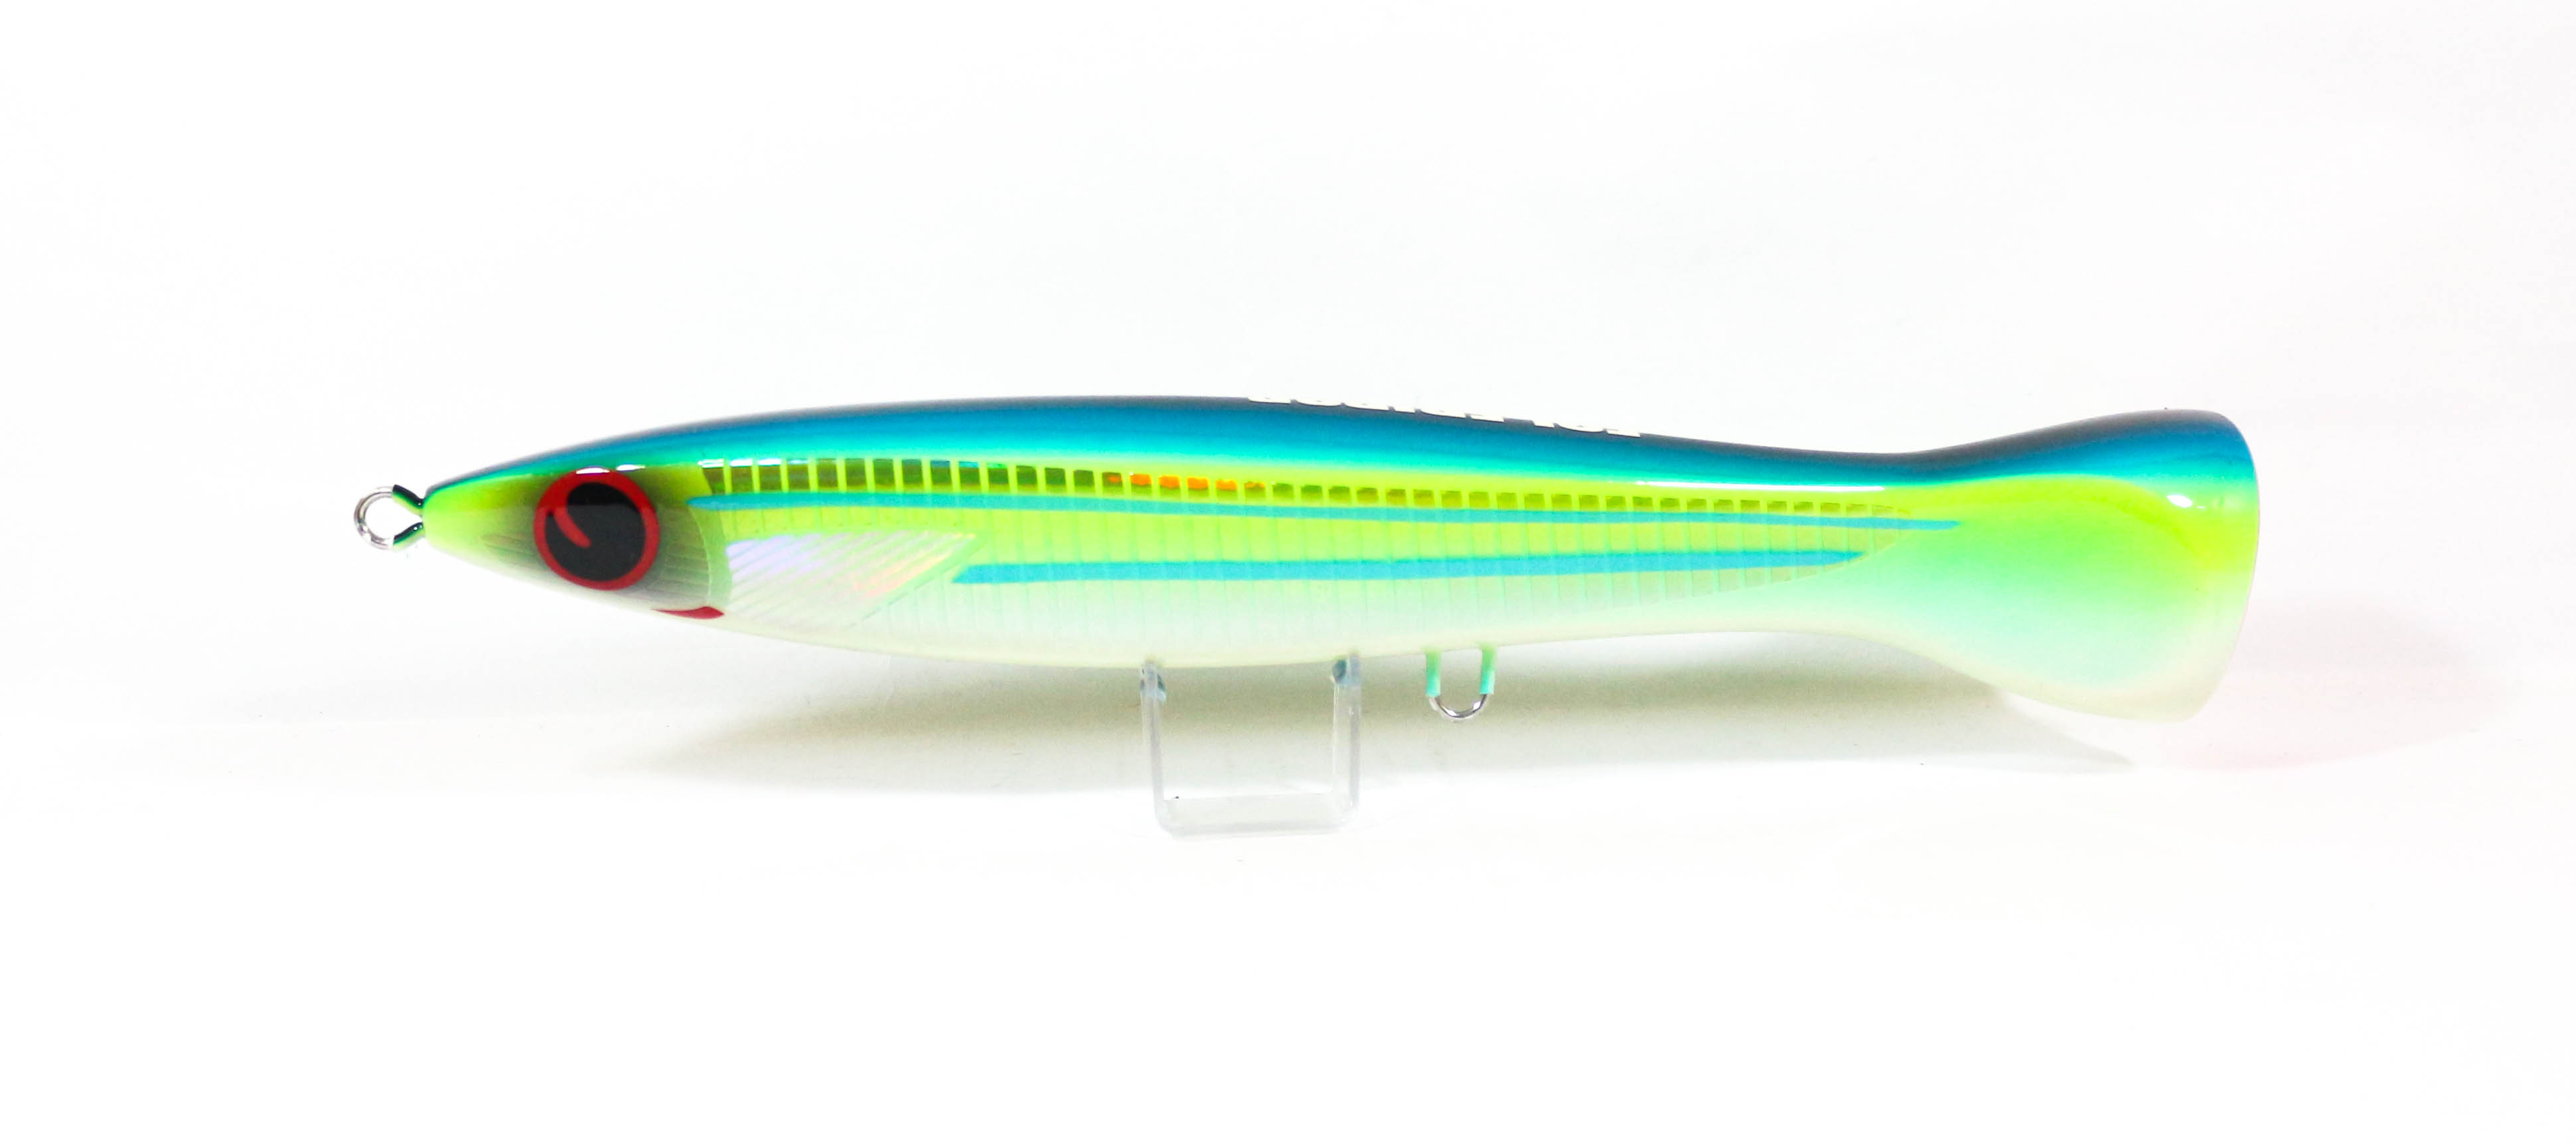 FCL Labo Popper Ebi Pop 140F Floating Lure 150 grams Green (1289)